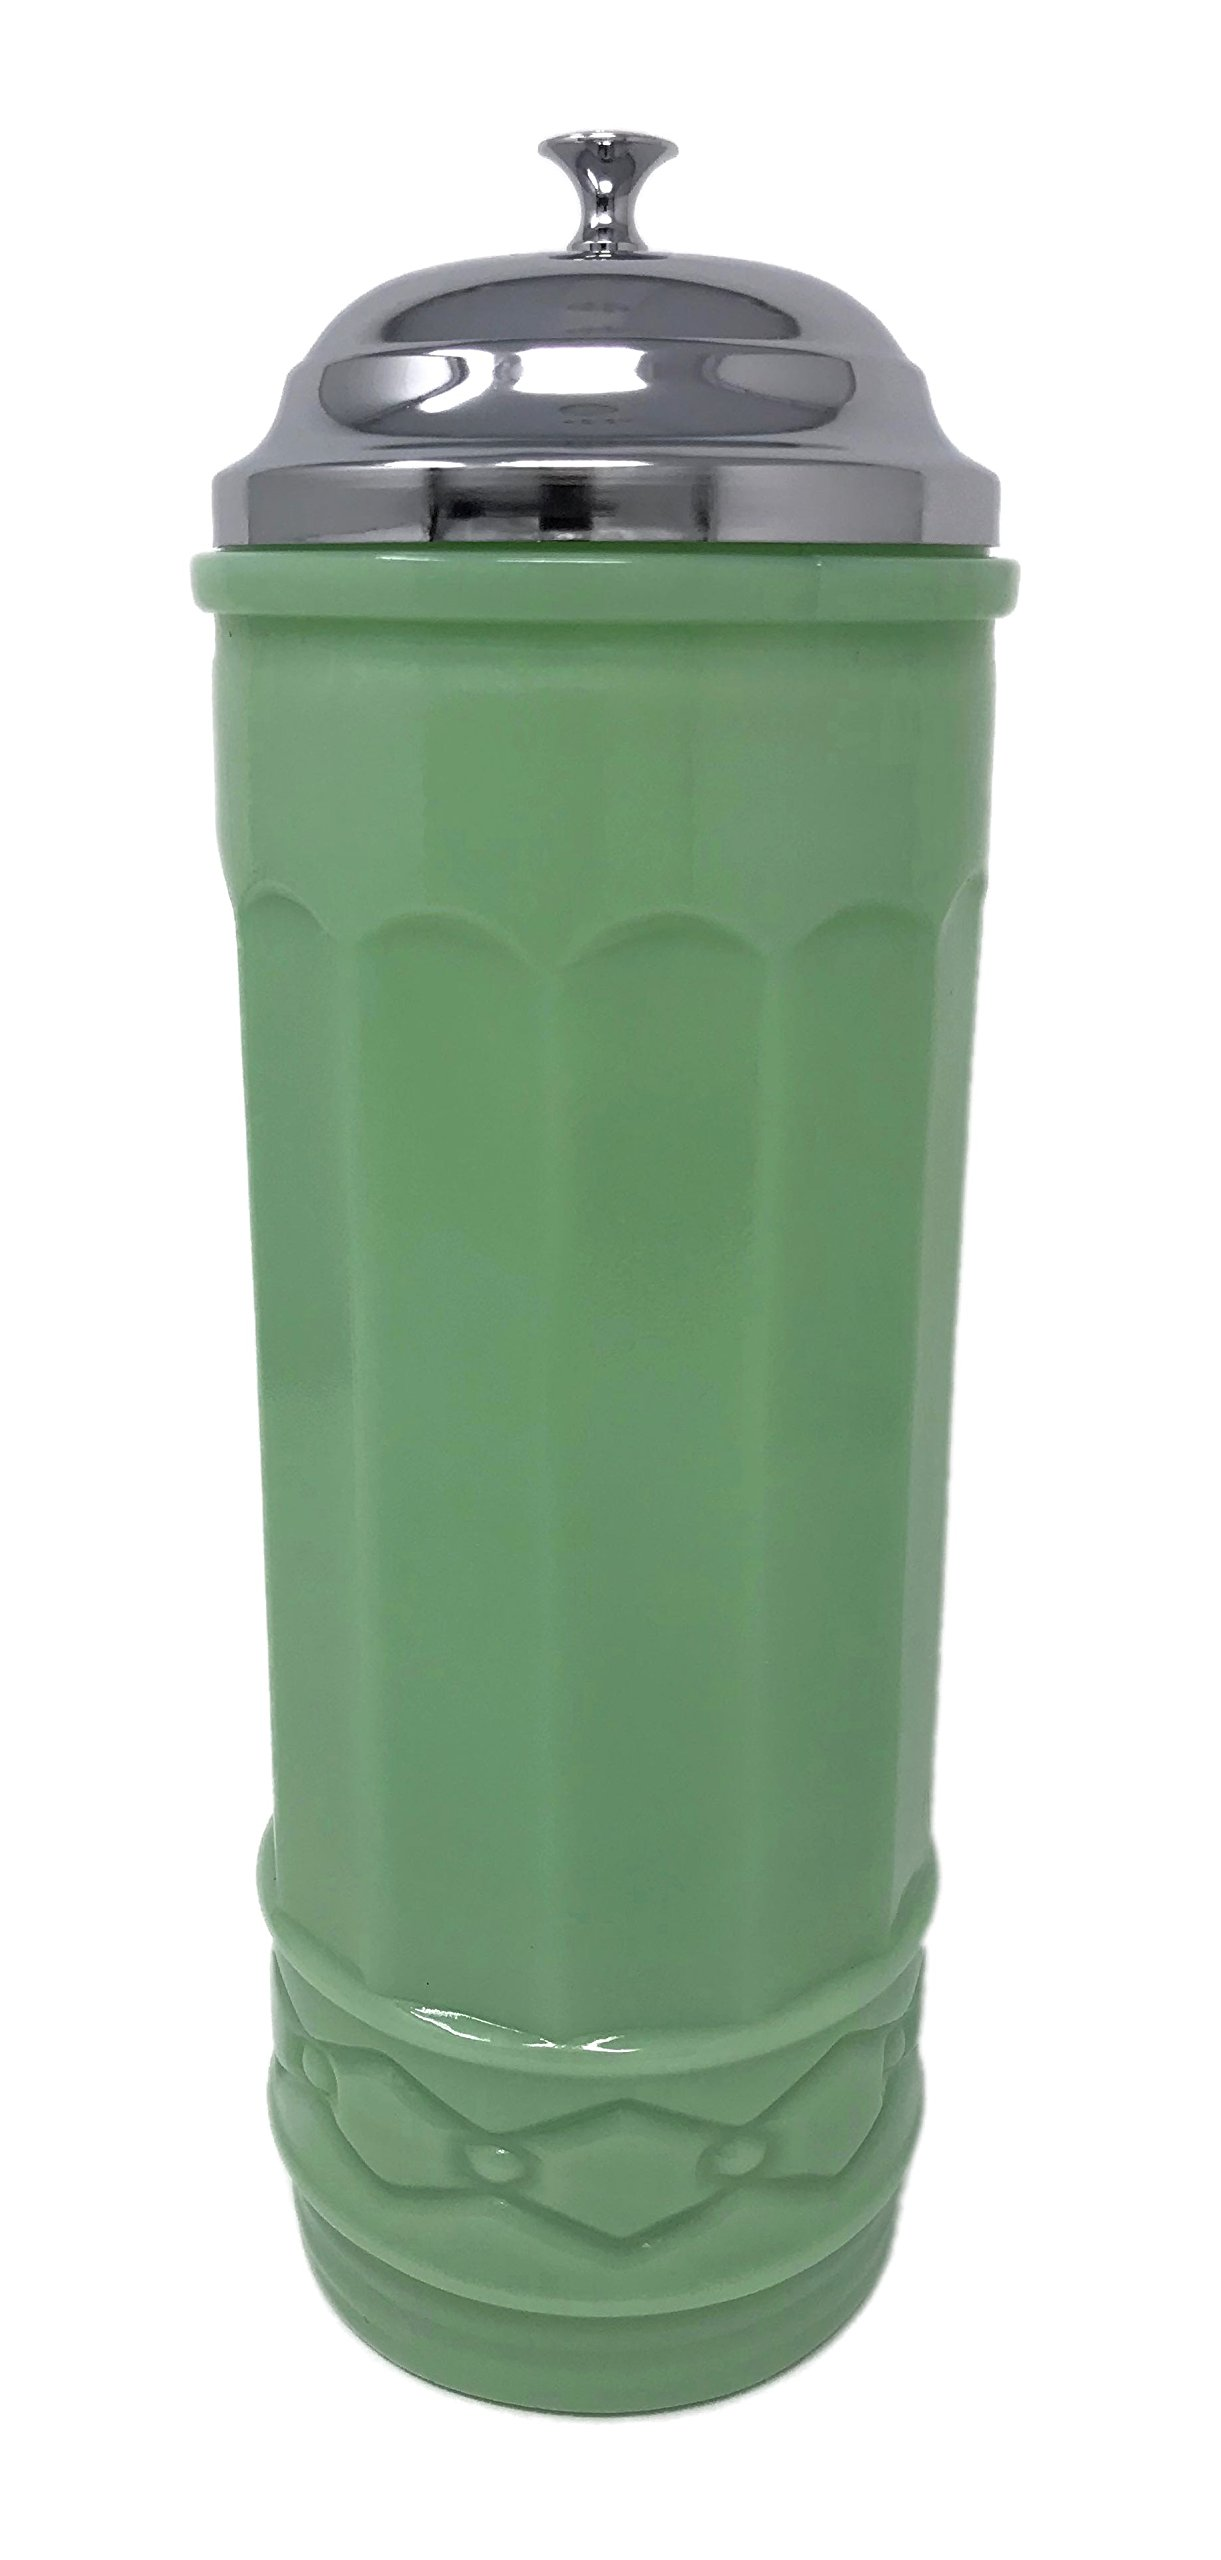 Rhyne and Son Straw Dispenser Holder with Metal Lid Reproduction Glass (Jadeite) by Rhyne and Son